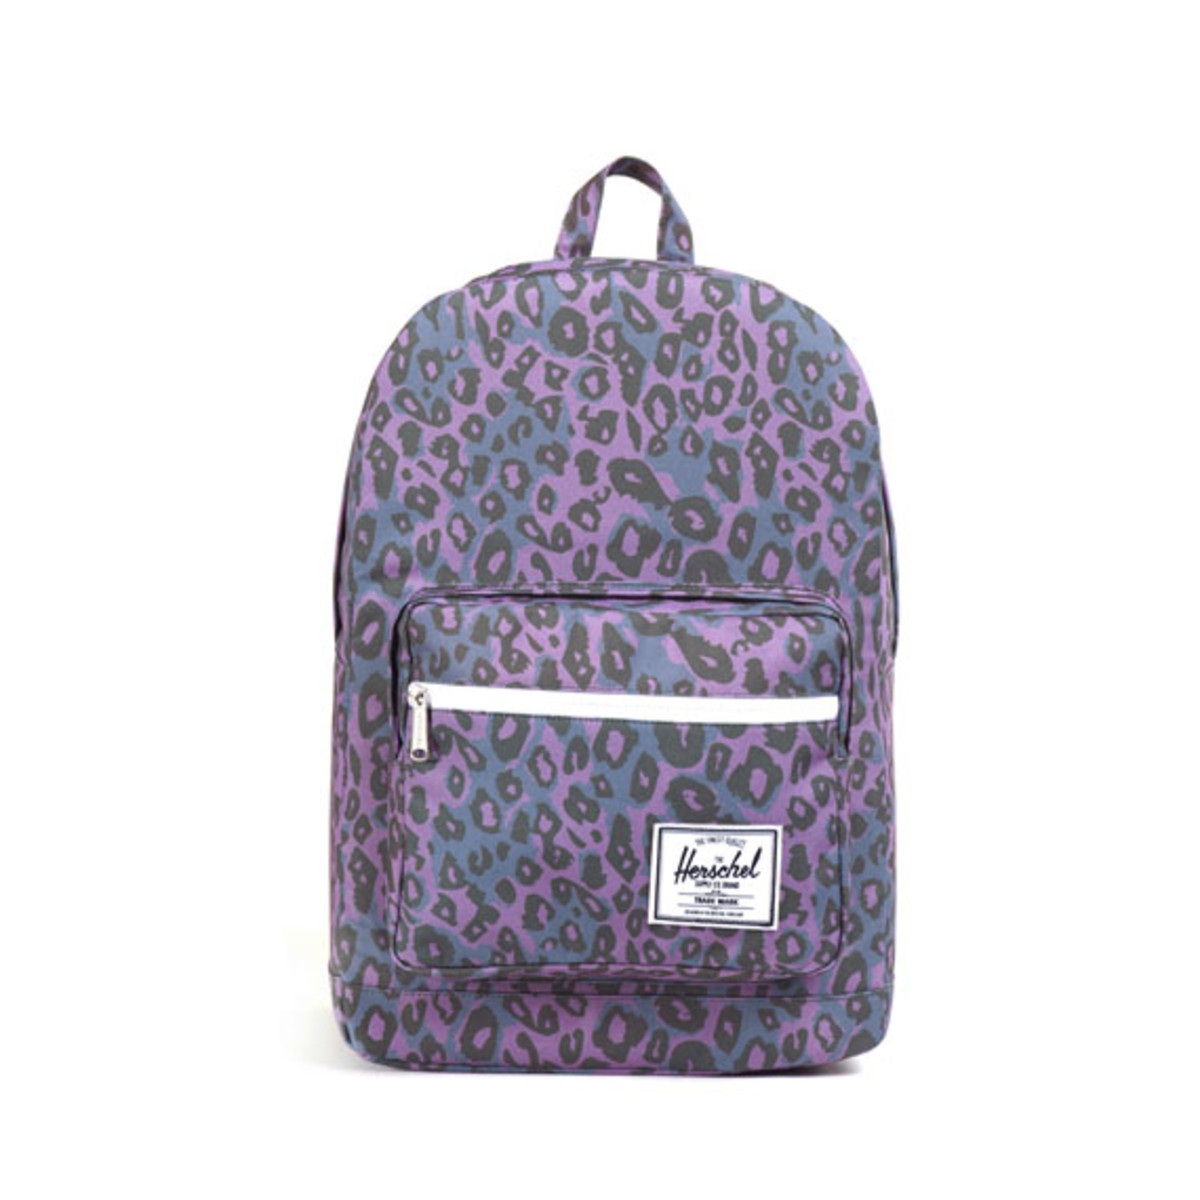 herschel-supply-co-fall-2013-classic-prints-10